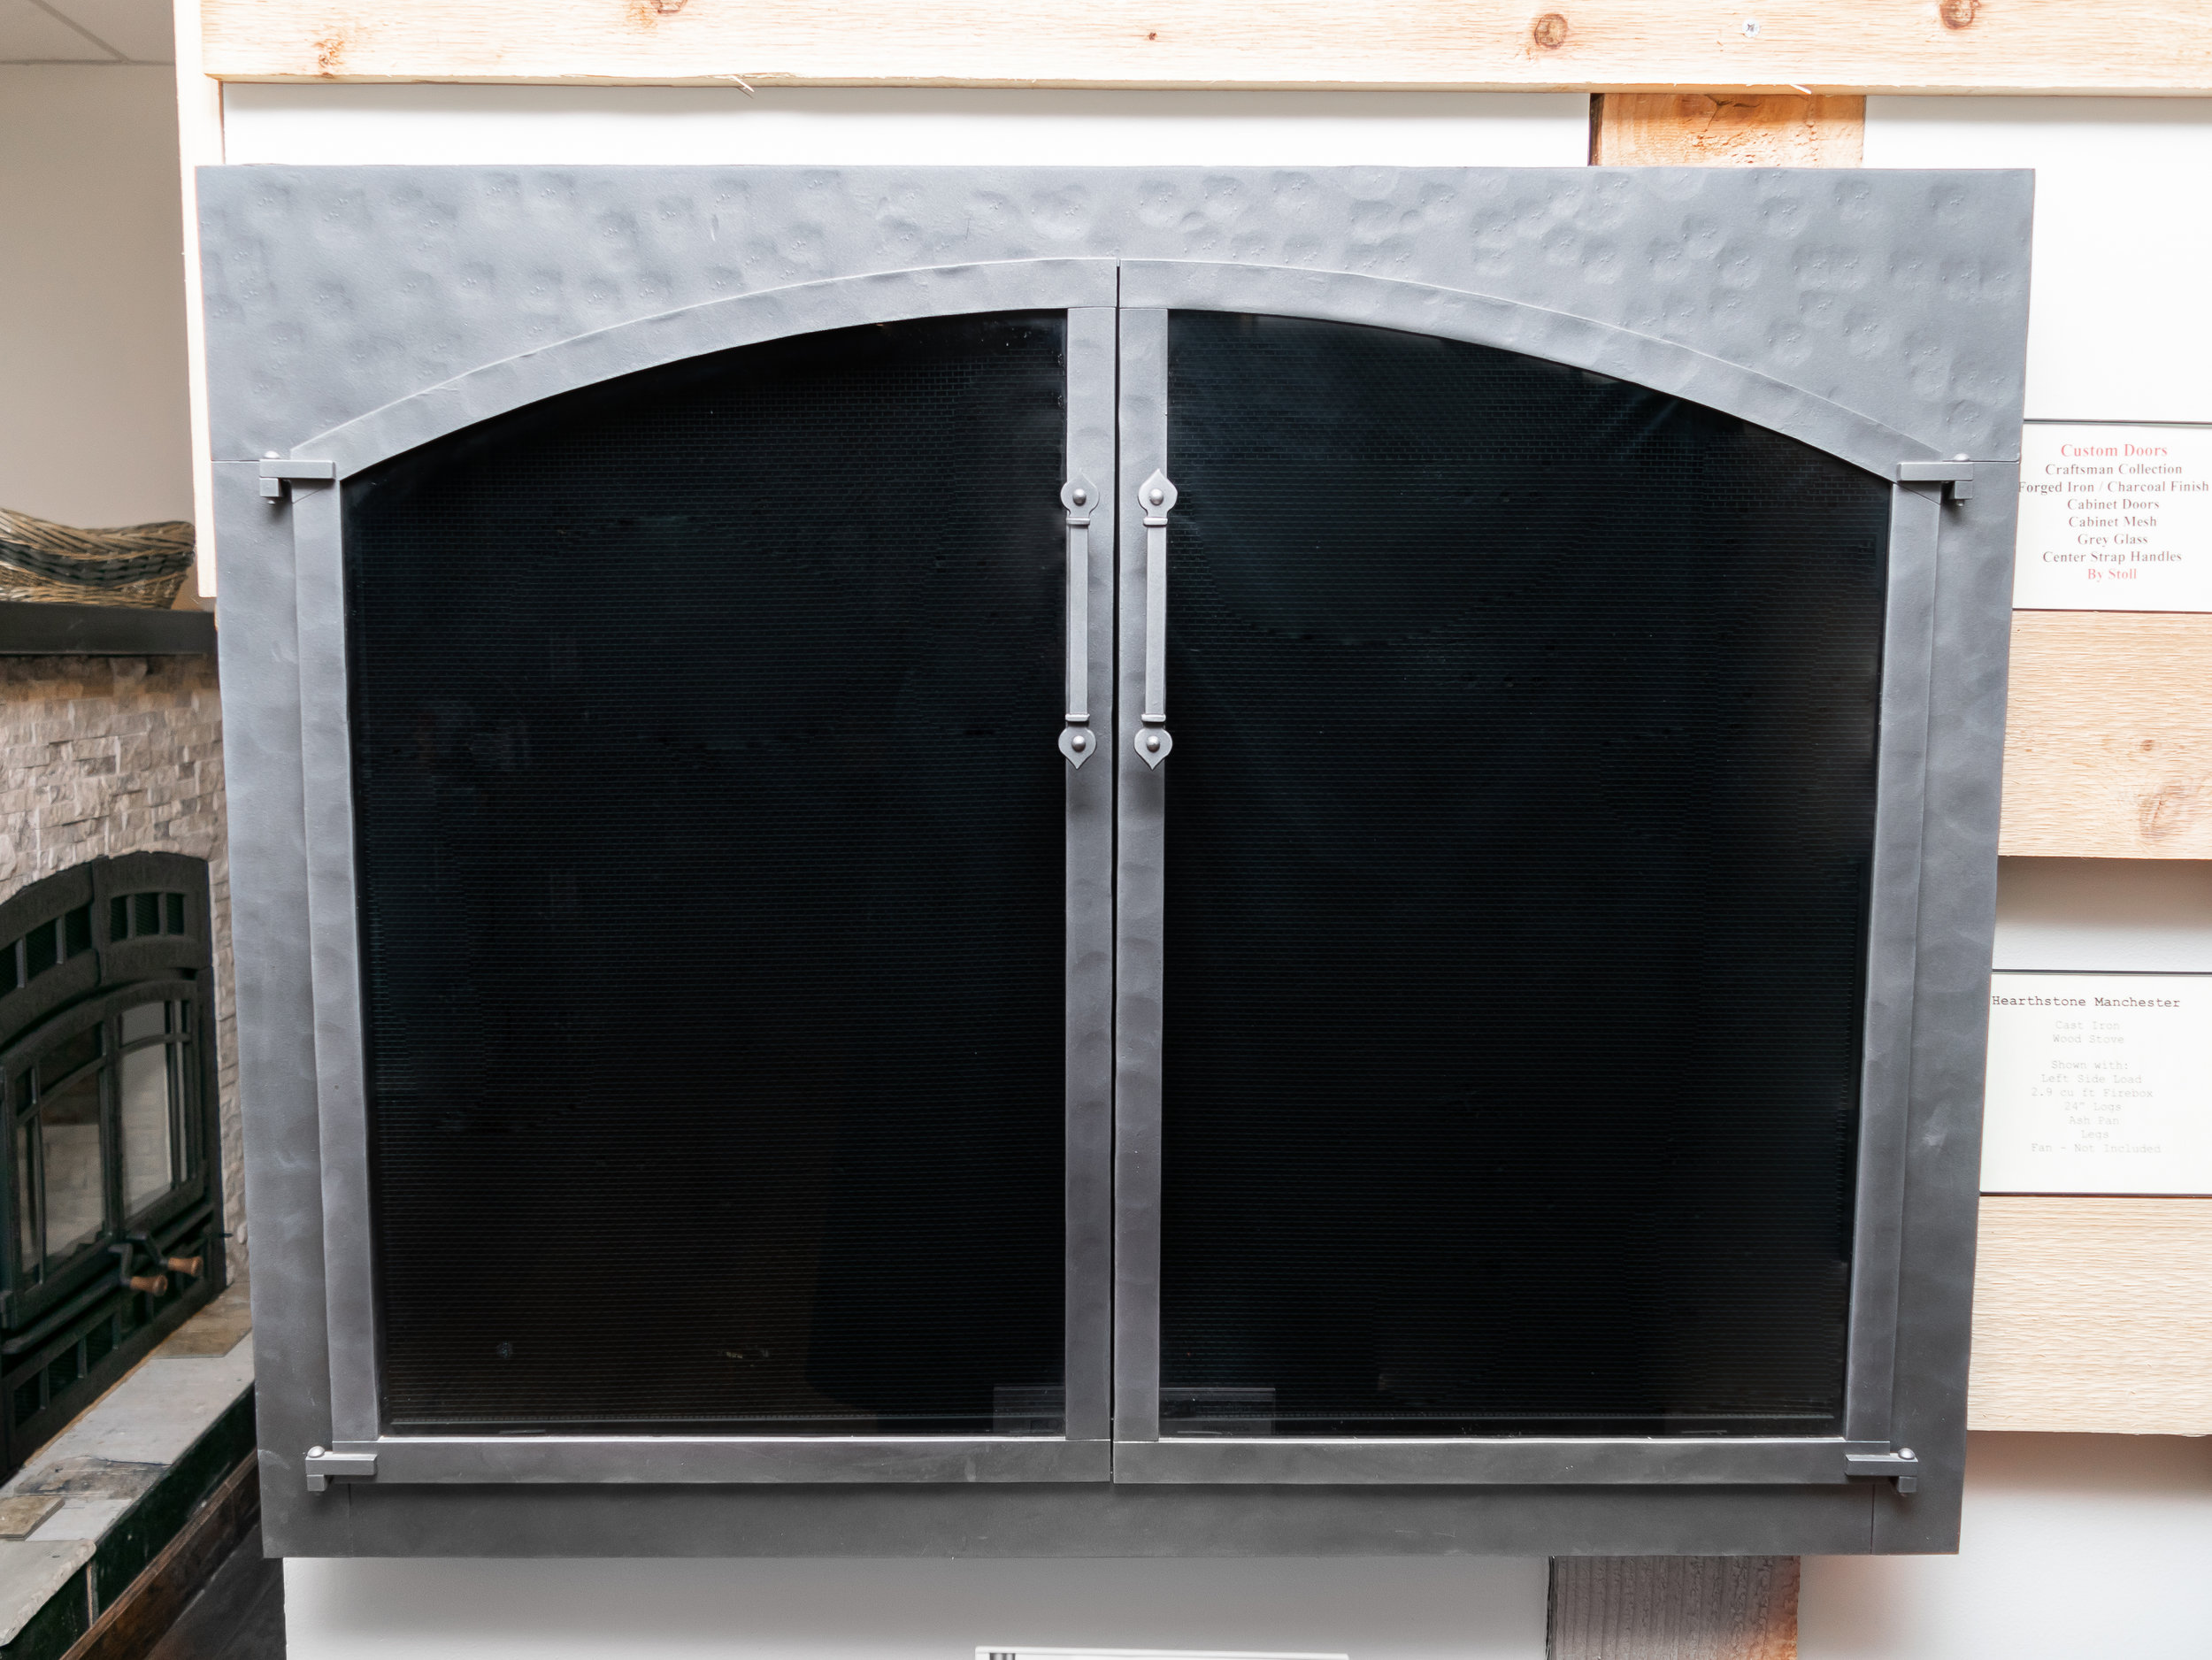 Stoll Double Doors - ‧ Custom sized and fabricated‧ Forged Iron texture‧ Charcoal finish‧ Grey Glass